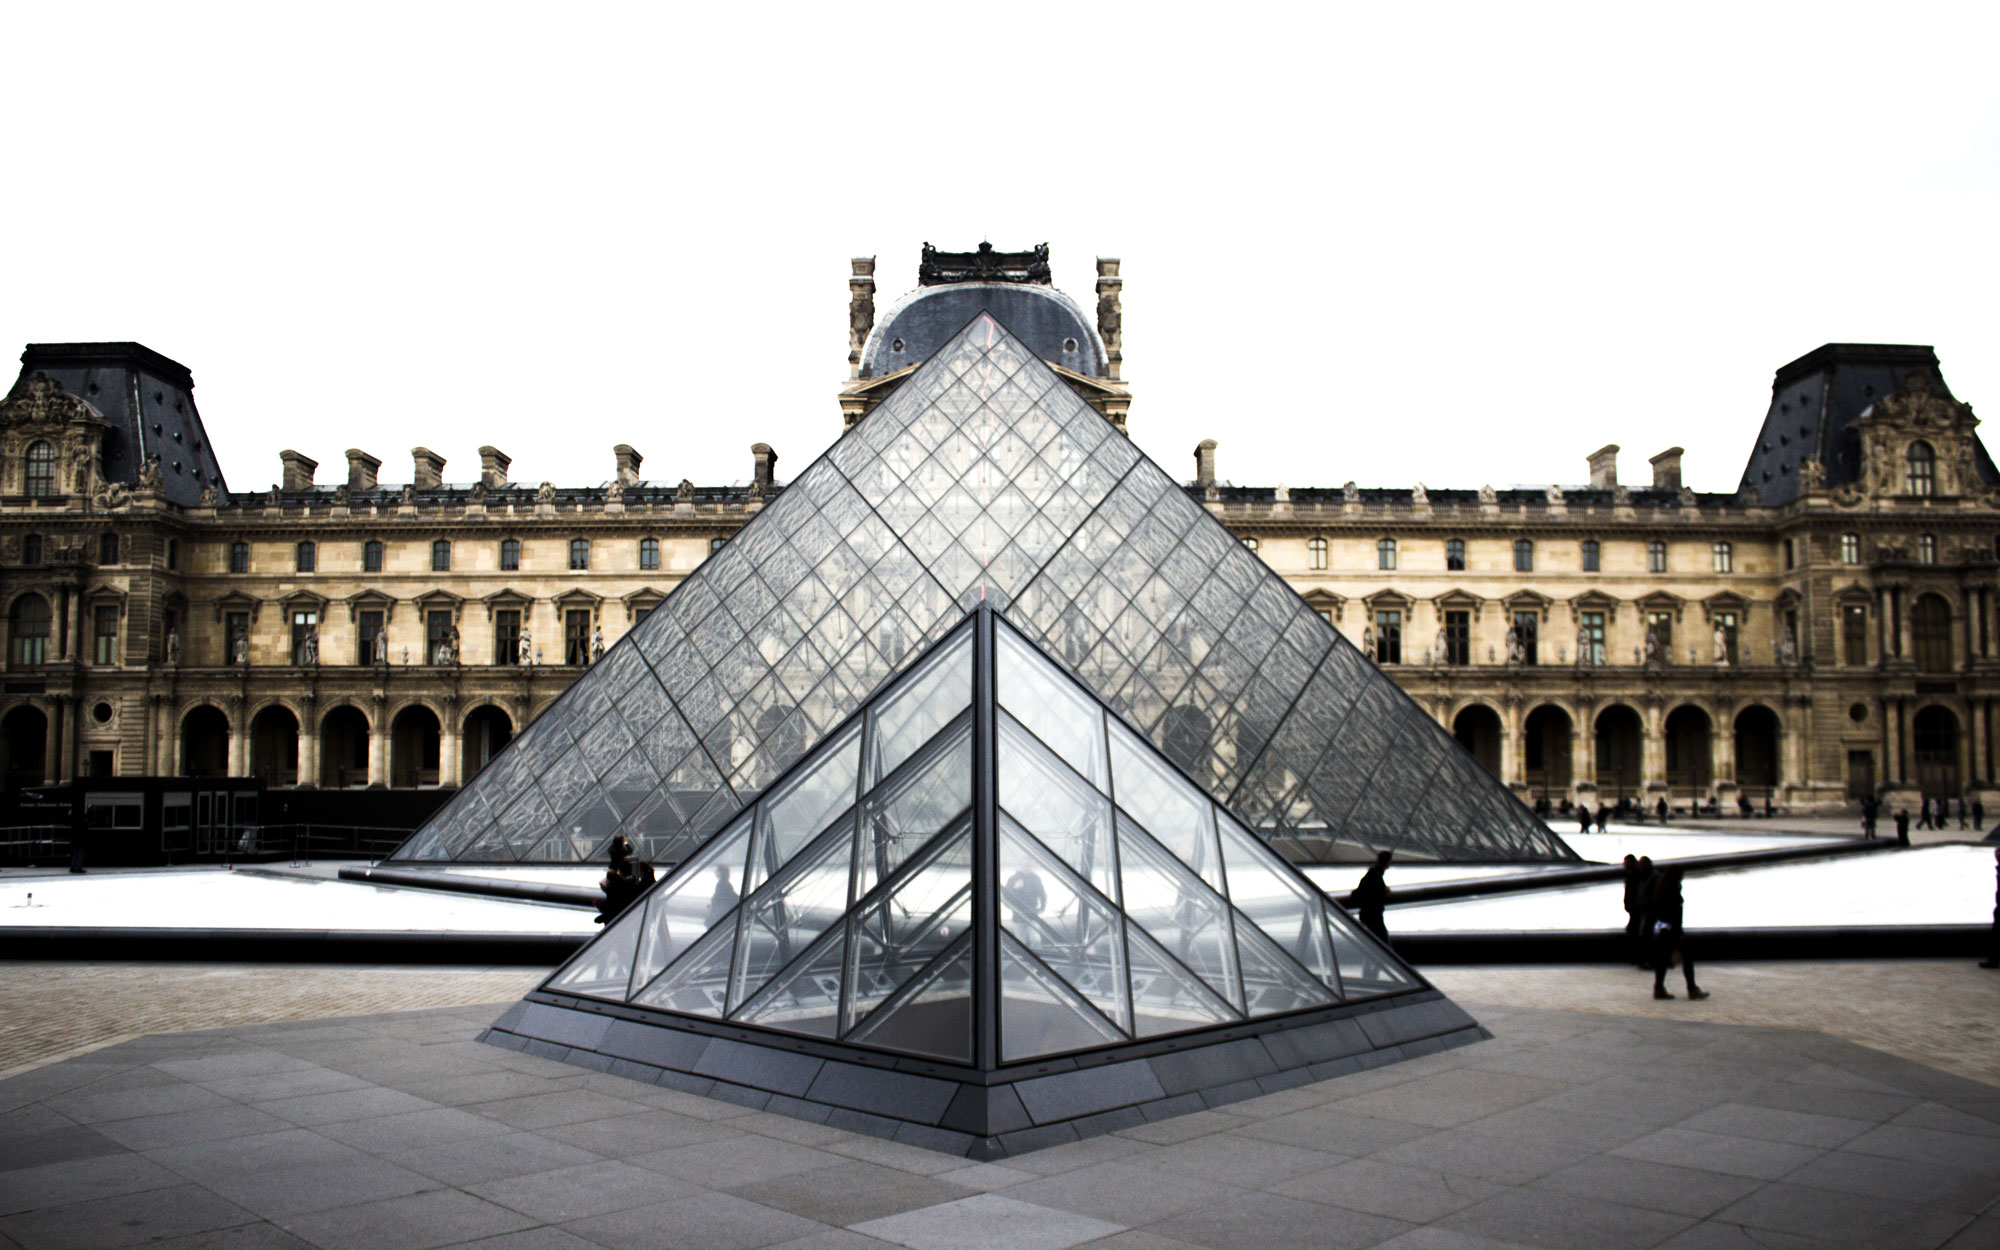 Secrets of the Louvre Museum in Paris